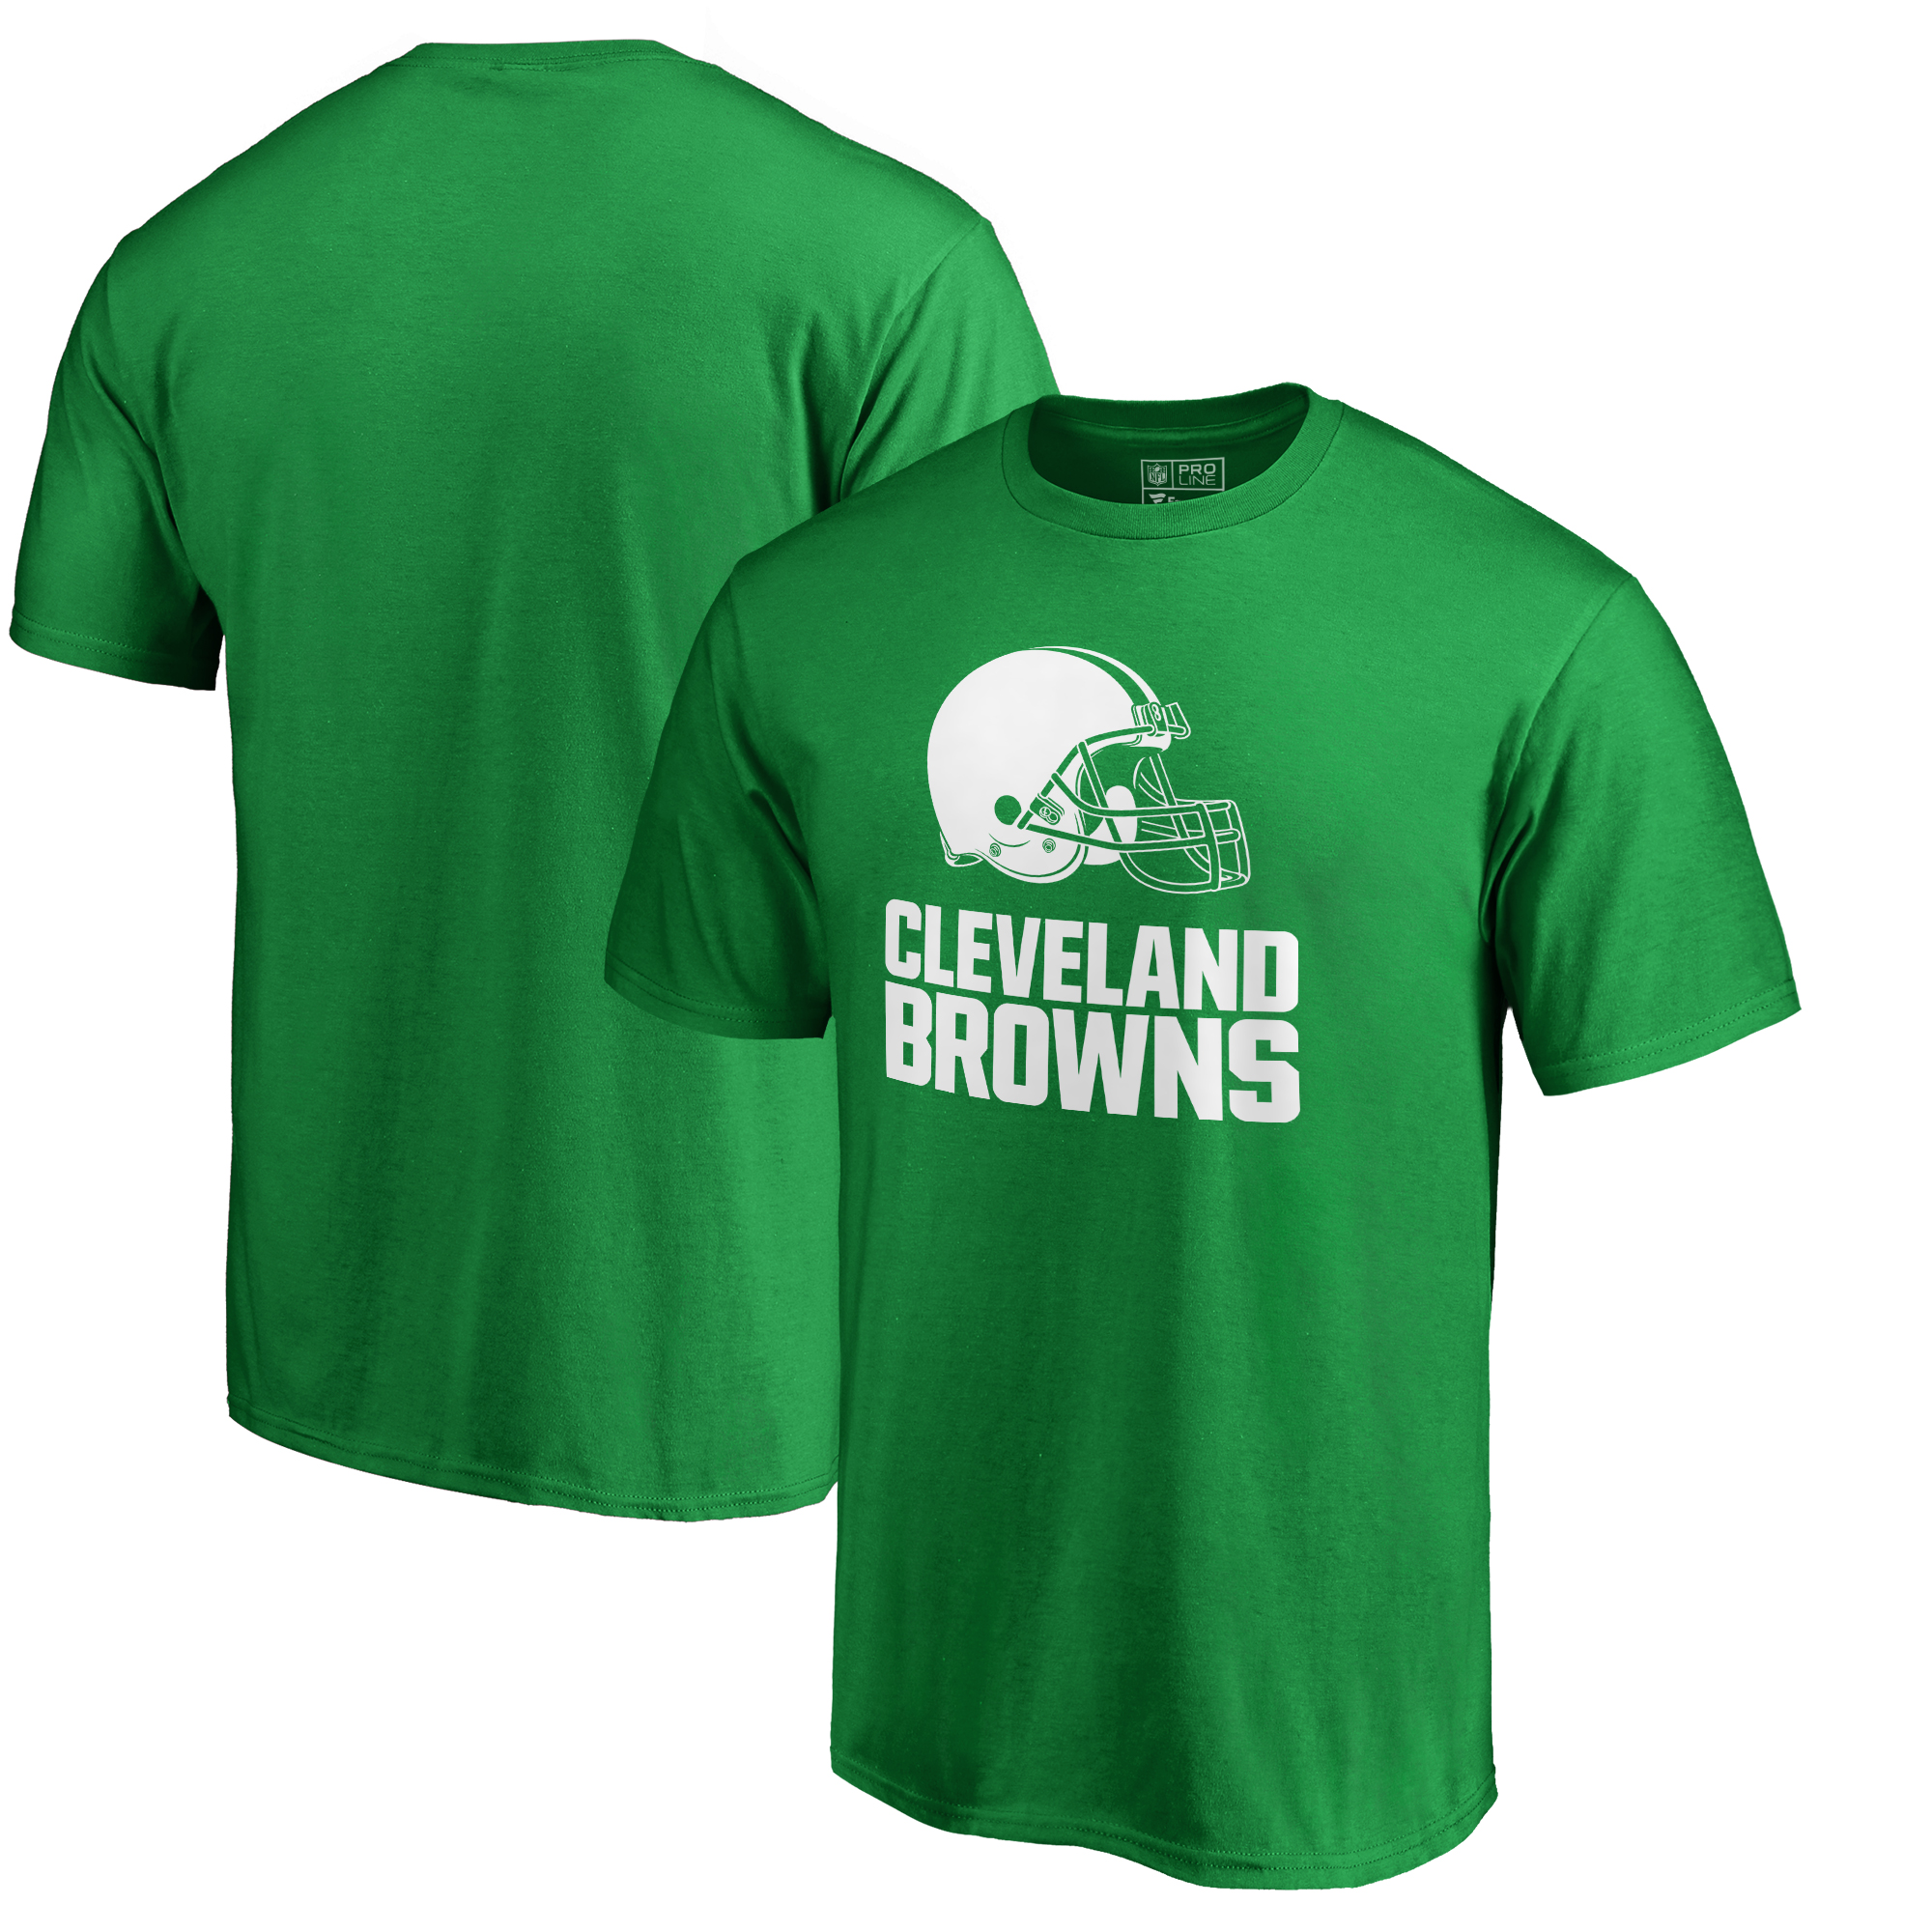 Cleveland Browns NFL Pro Line by Fanatics Branded Big & Tall St. Patrick's Day White Logo T-Shirt - Green